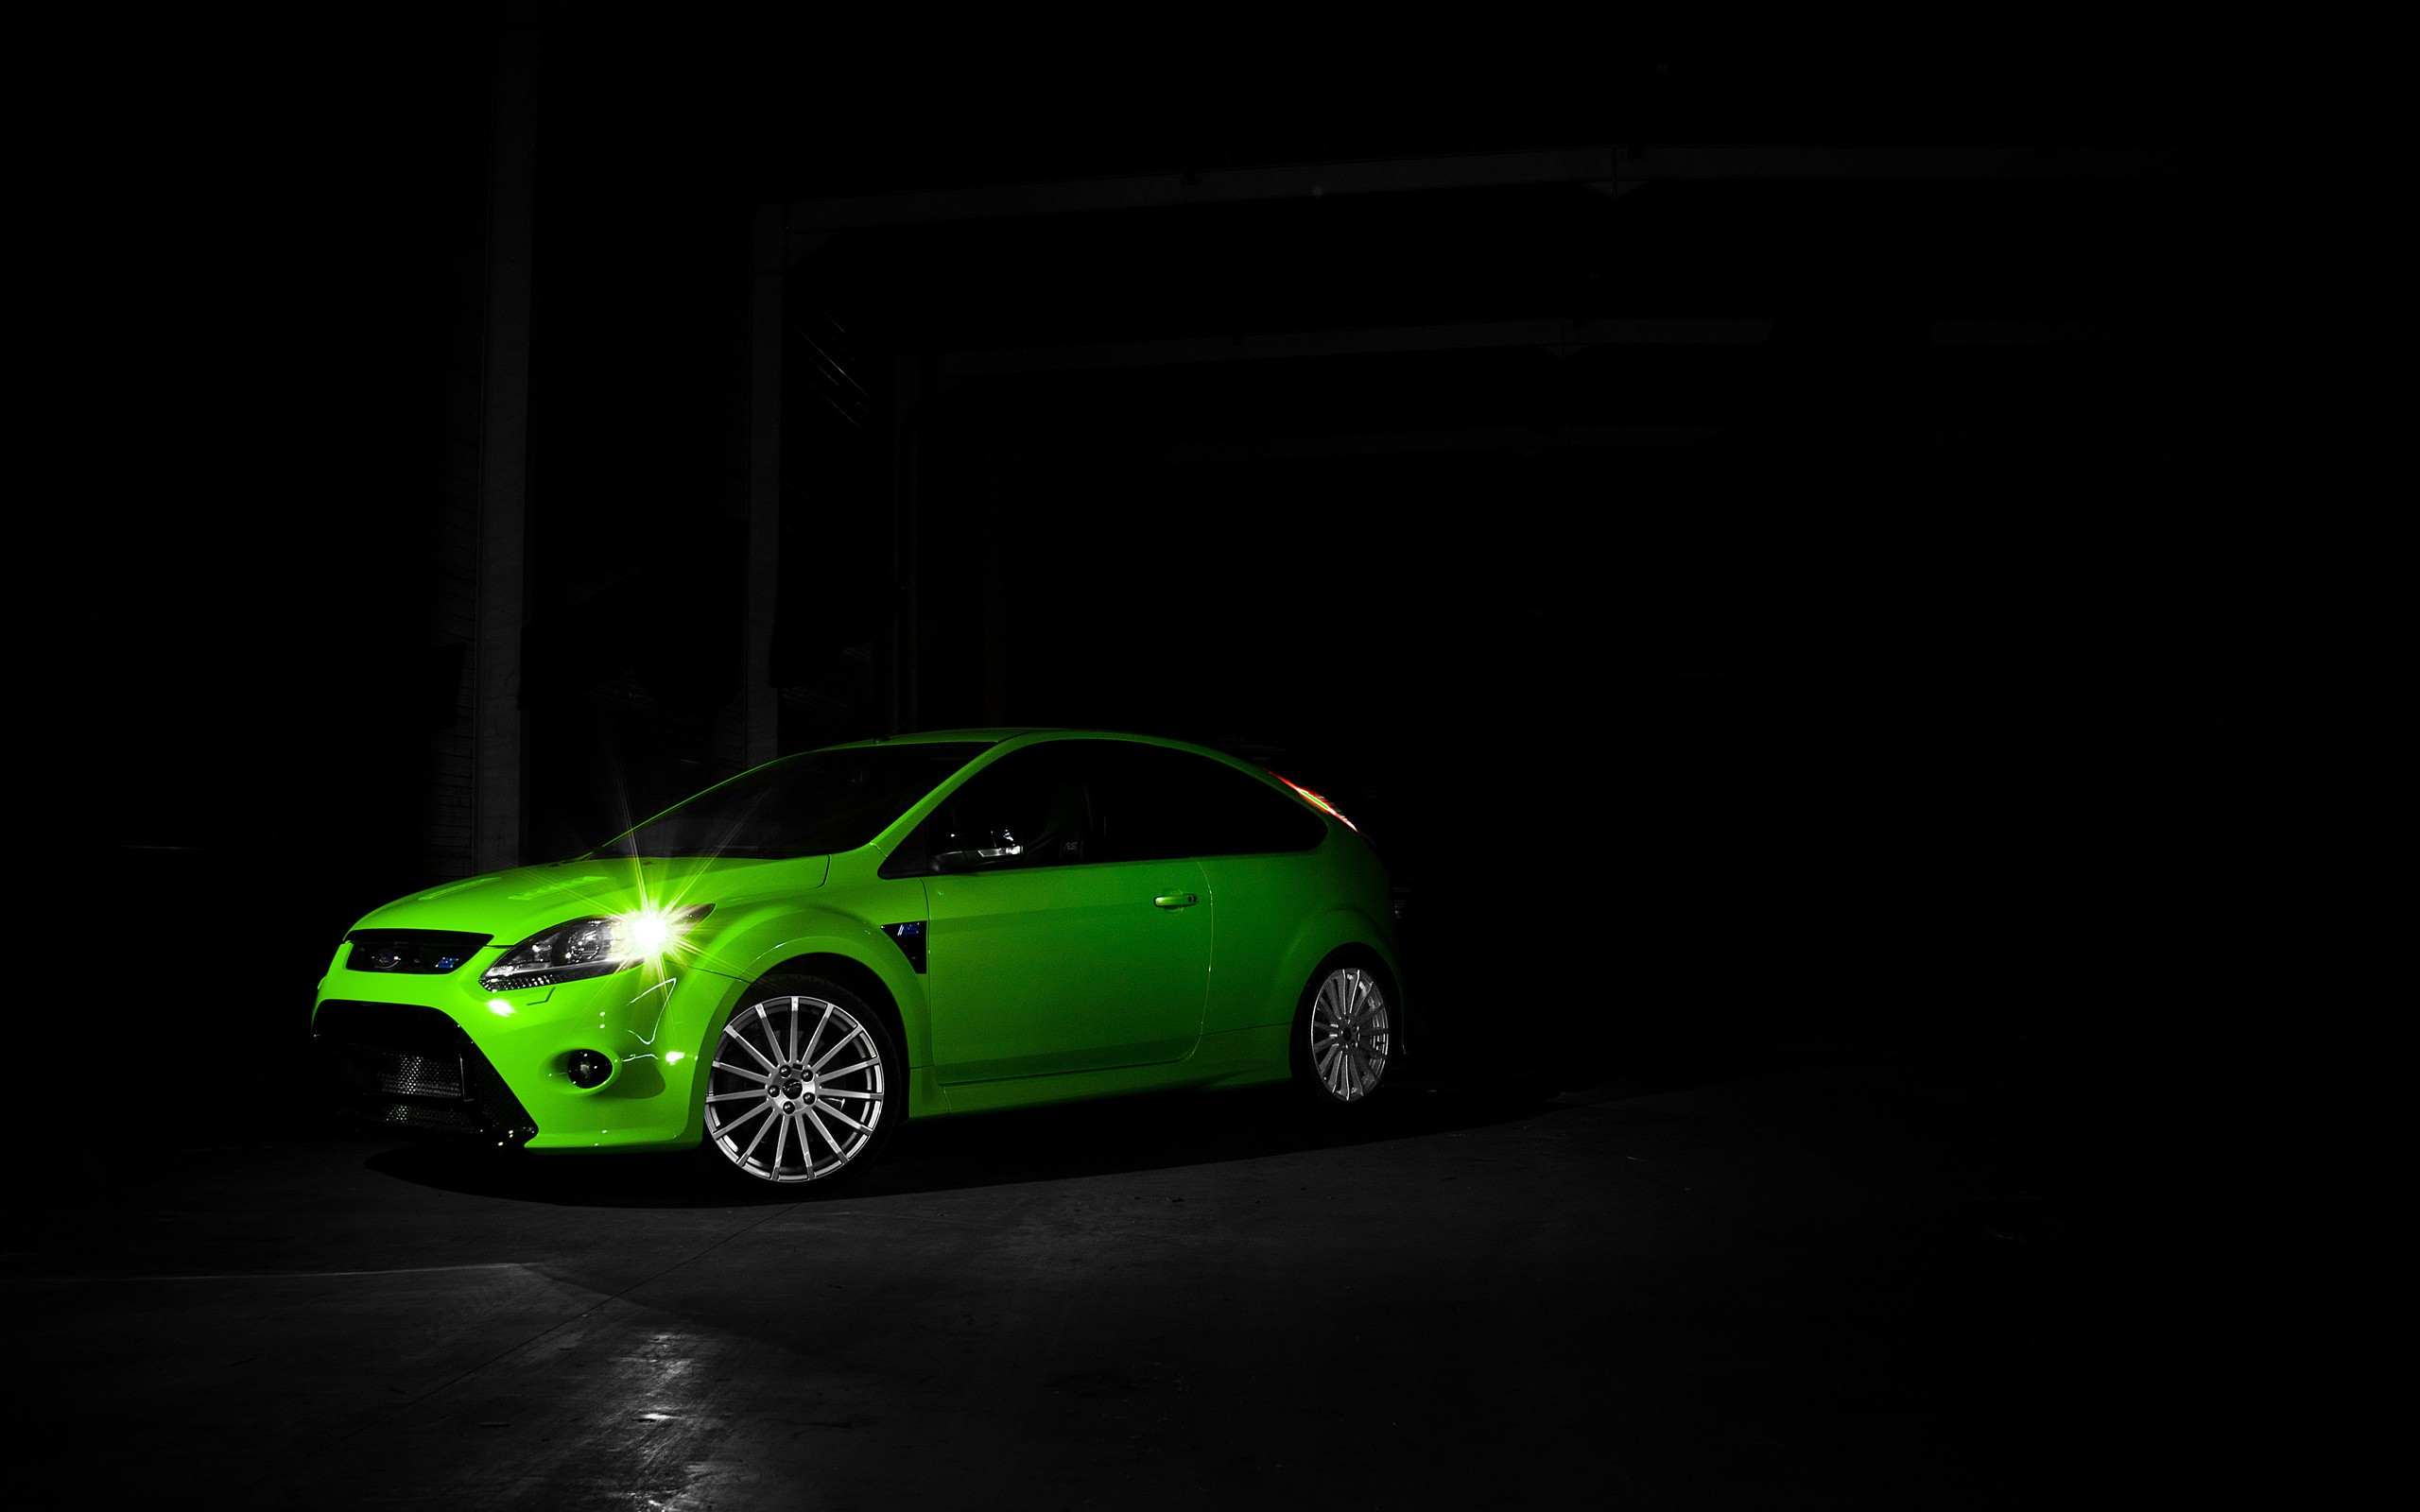 The Car Movie 1977 Wallpaper Ford Ford Focus Car Ford Focus Rs Wallpapers Hd